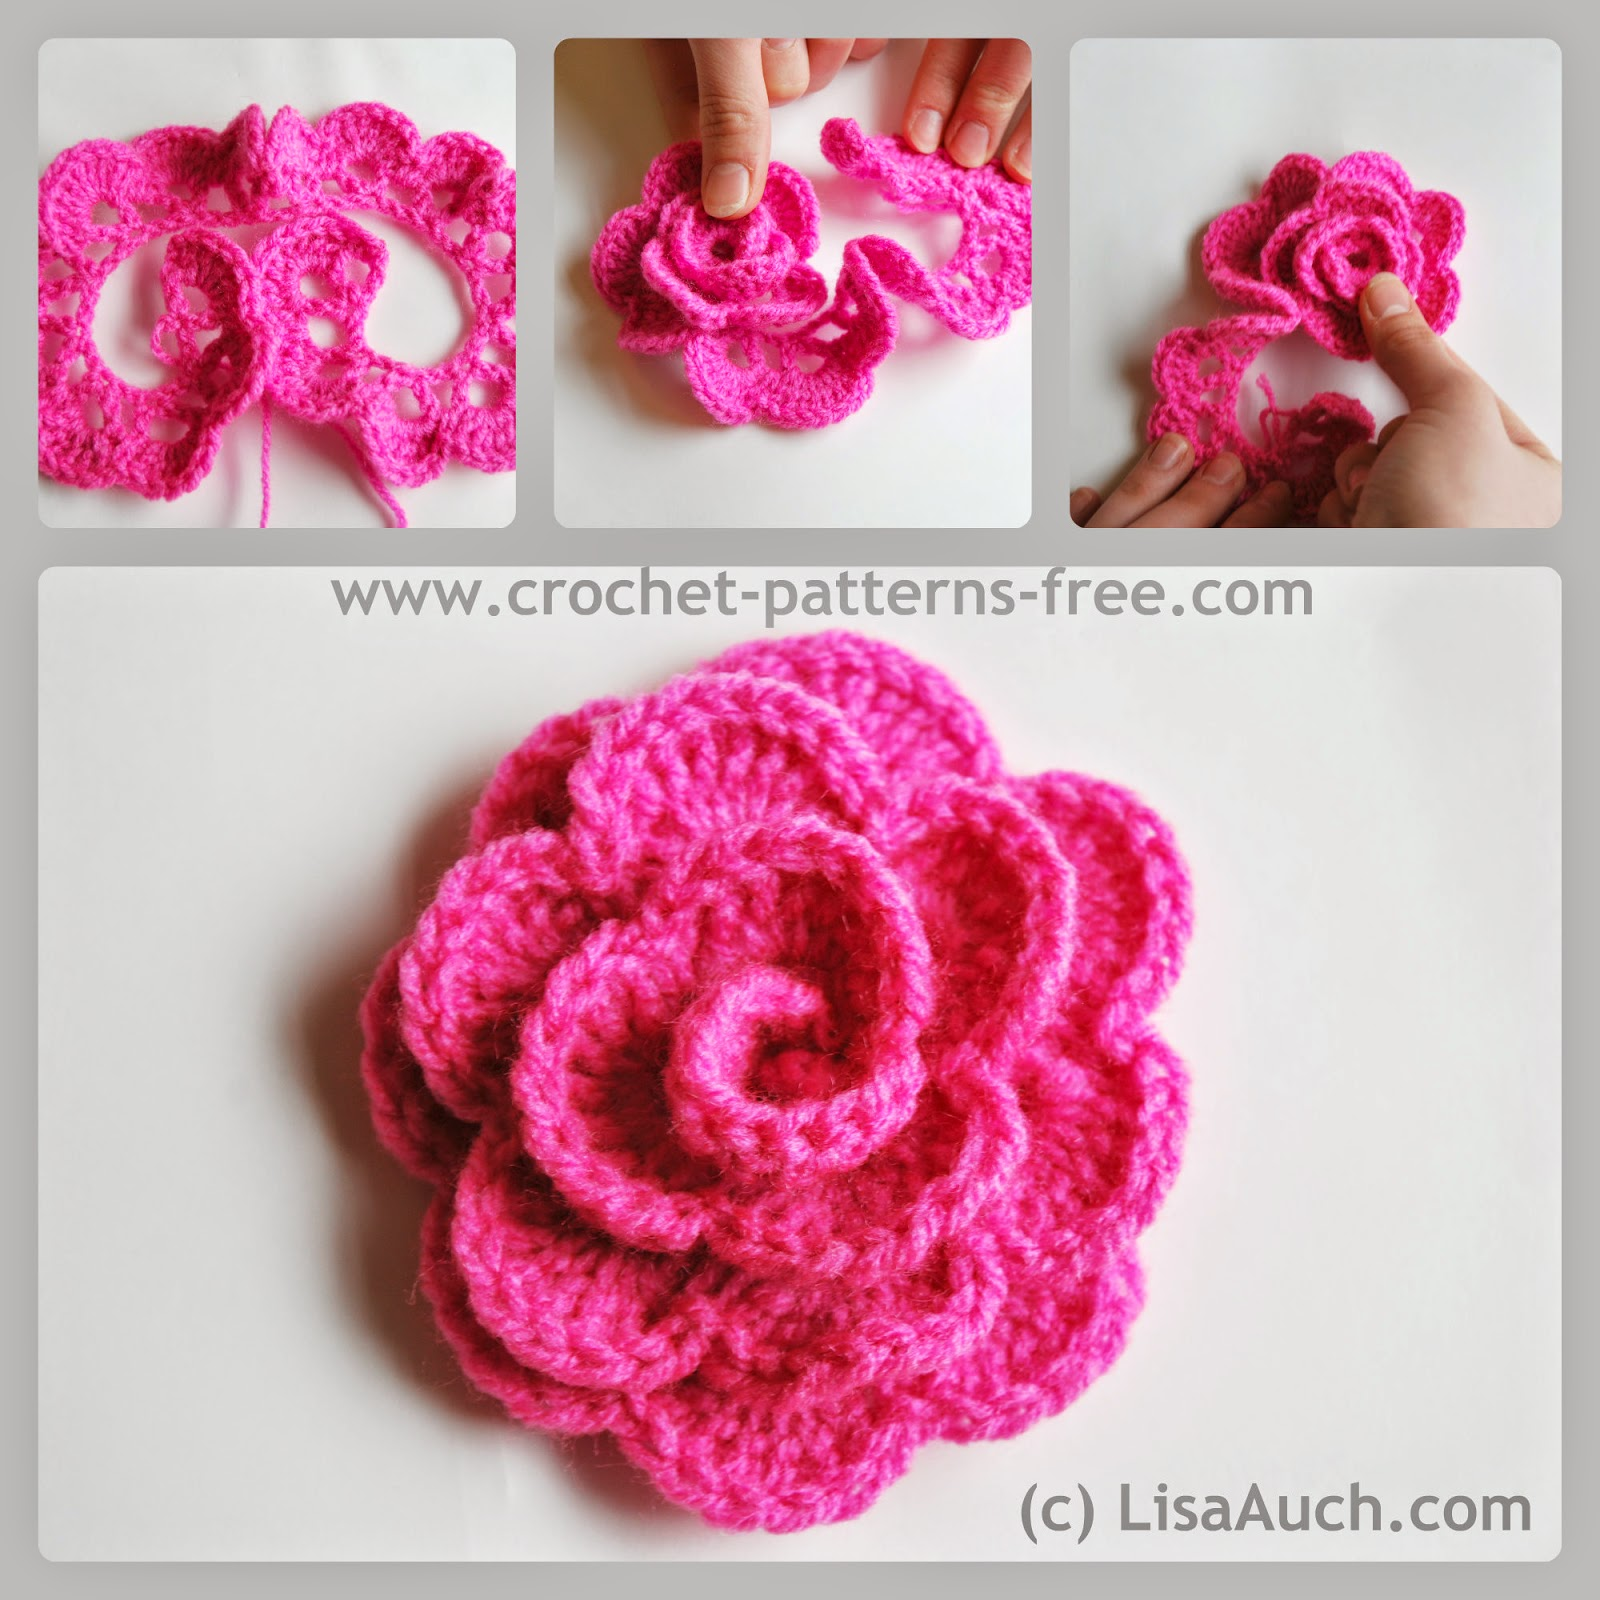 Make Crochet Flower Pattern : Rose Hip Blog Crochet Flower Pattern 2016 Car Release Date